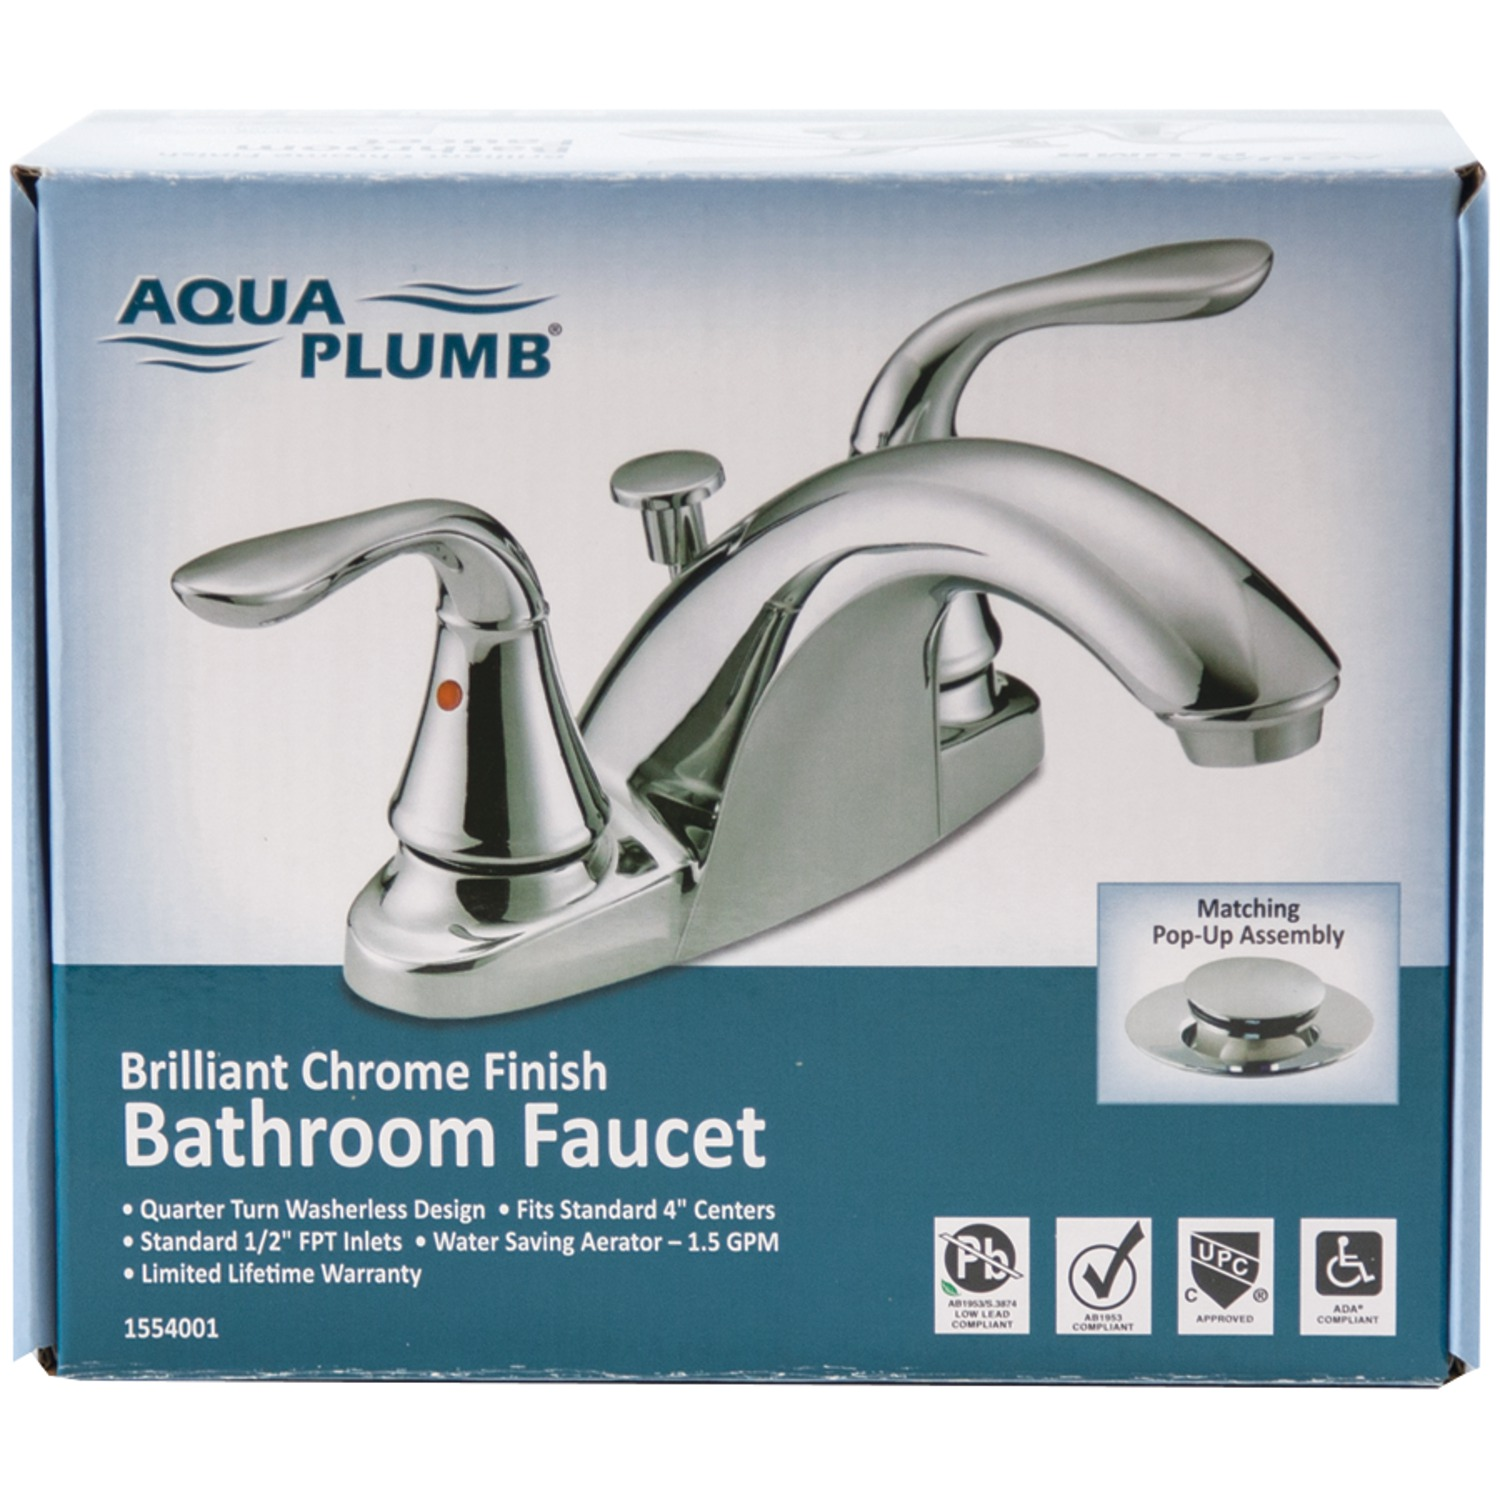 Charmant AQUA PLUMB 1554001 Premium Chrome Plated 2 Handle Bathroom Faucet